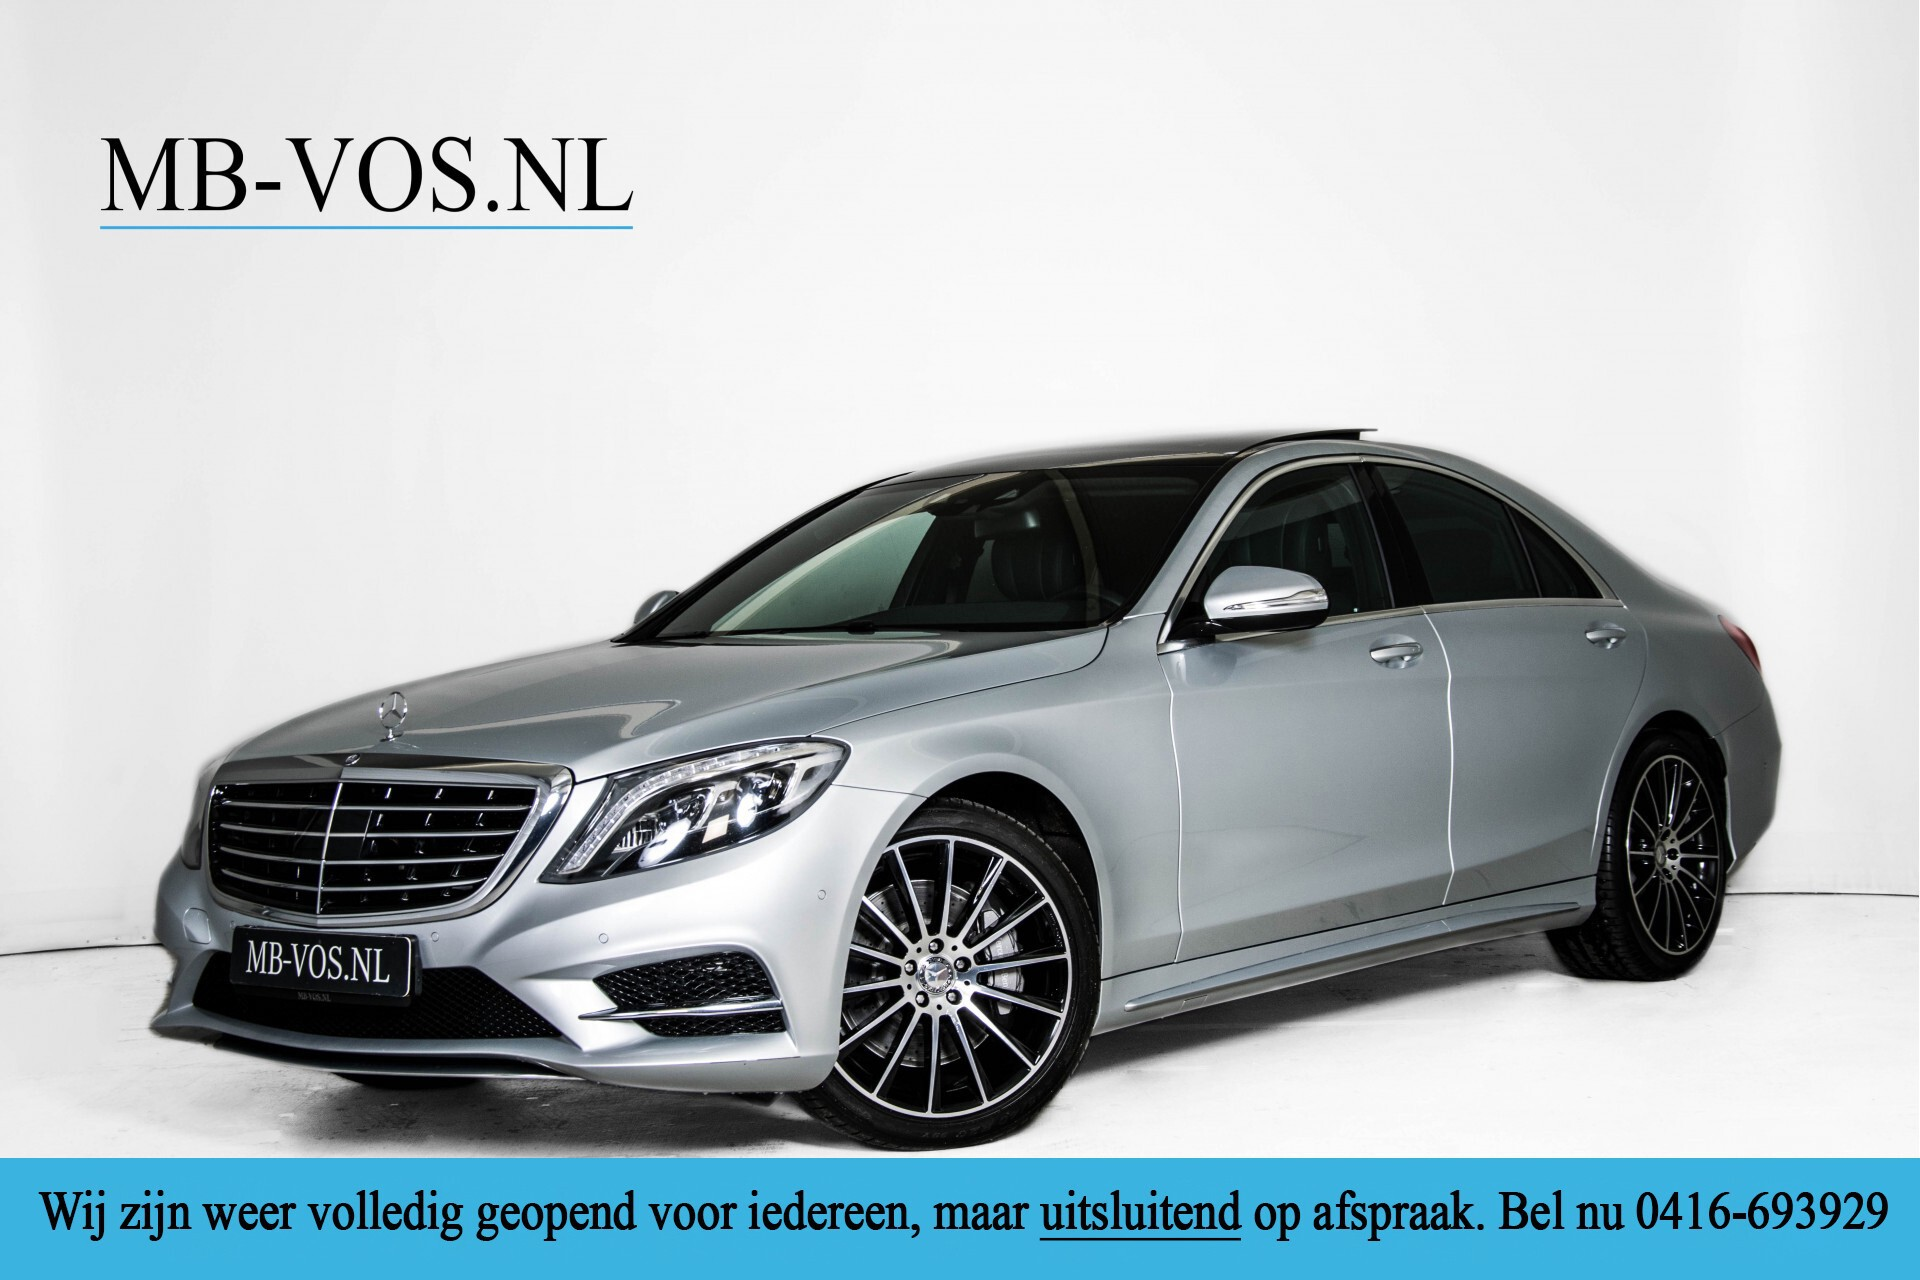 Mercedes-Benz S-Klasse 350 Bluetec 4-M AMG Plus Exclusive Distronic/Keyless/Panorama Aut7 Foto 1